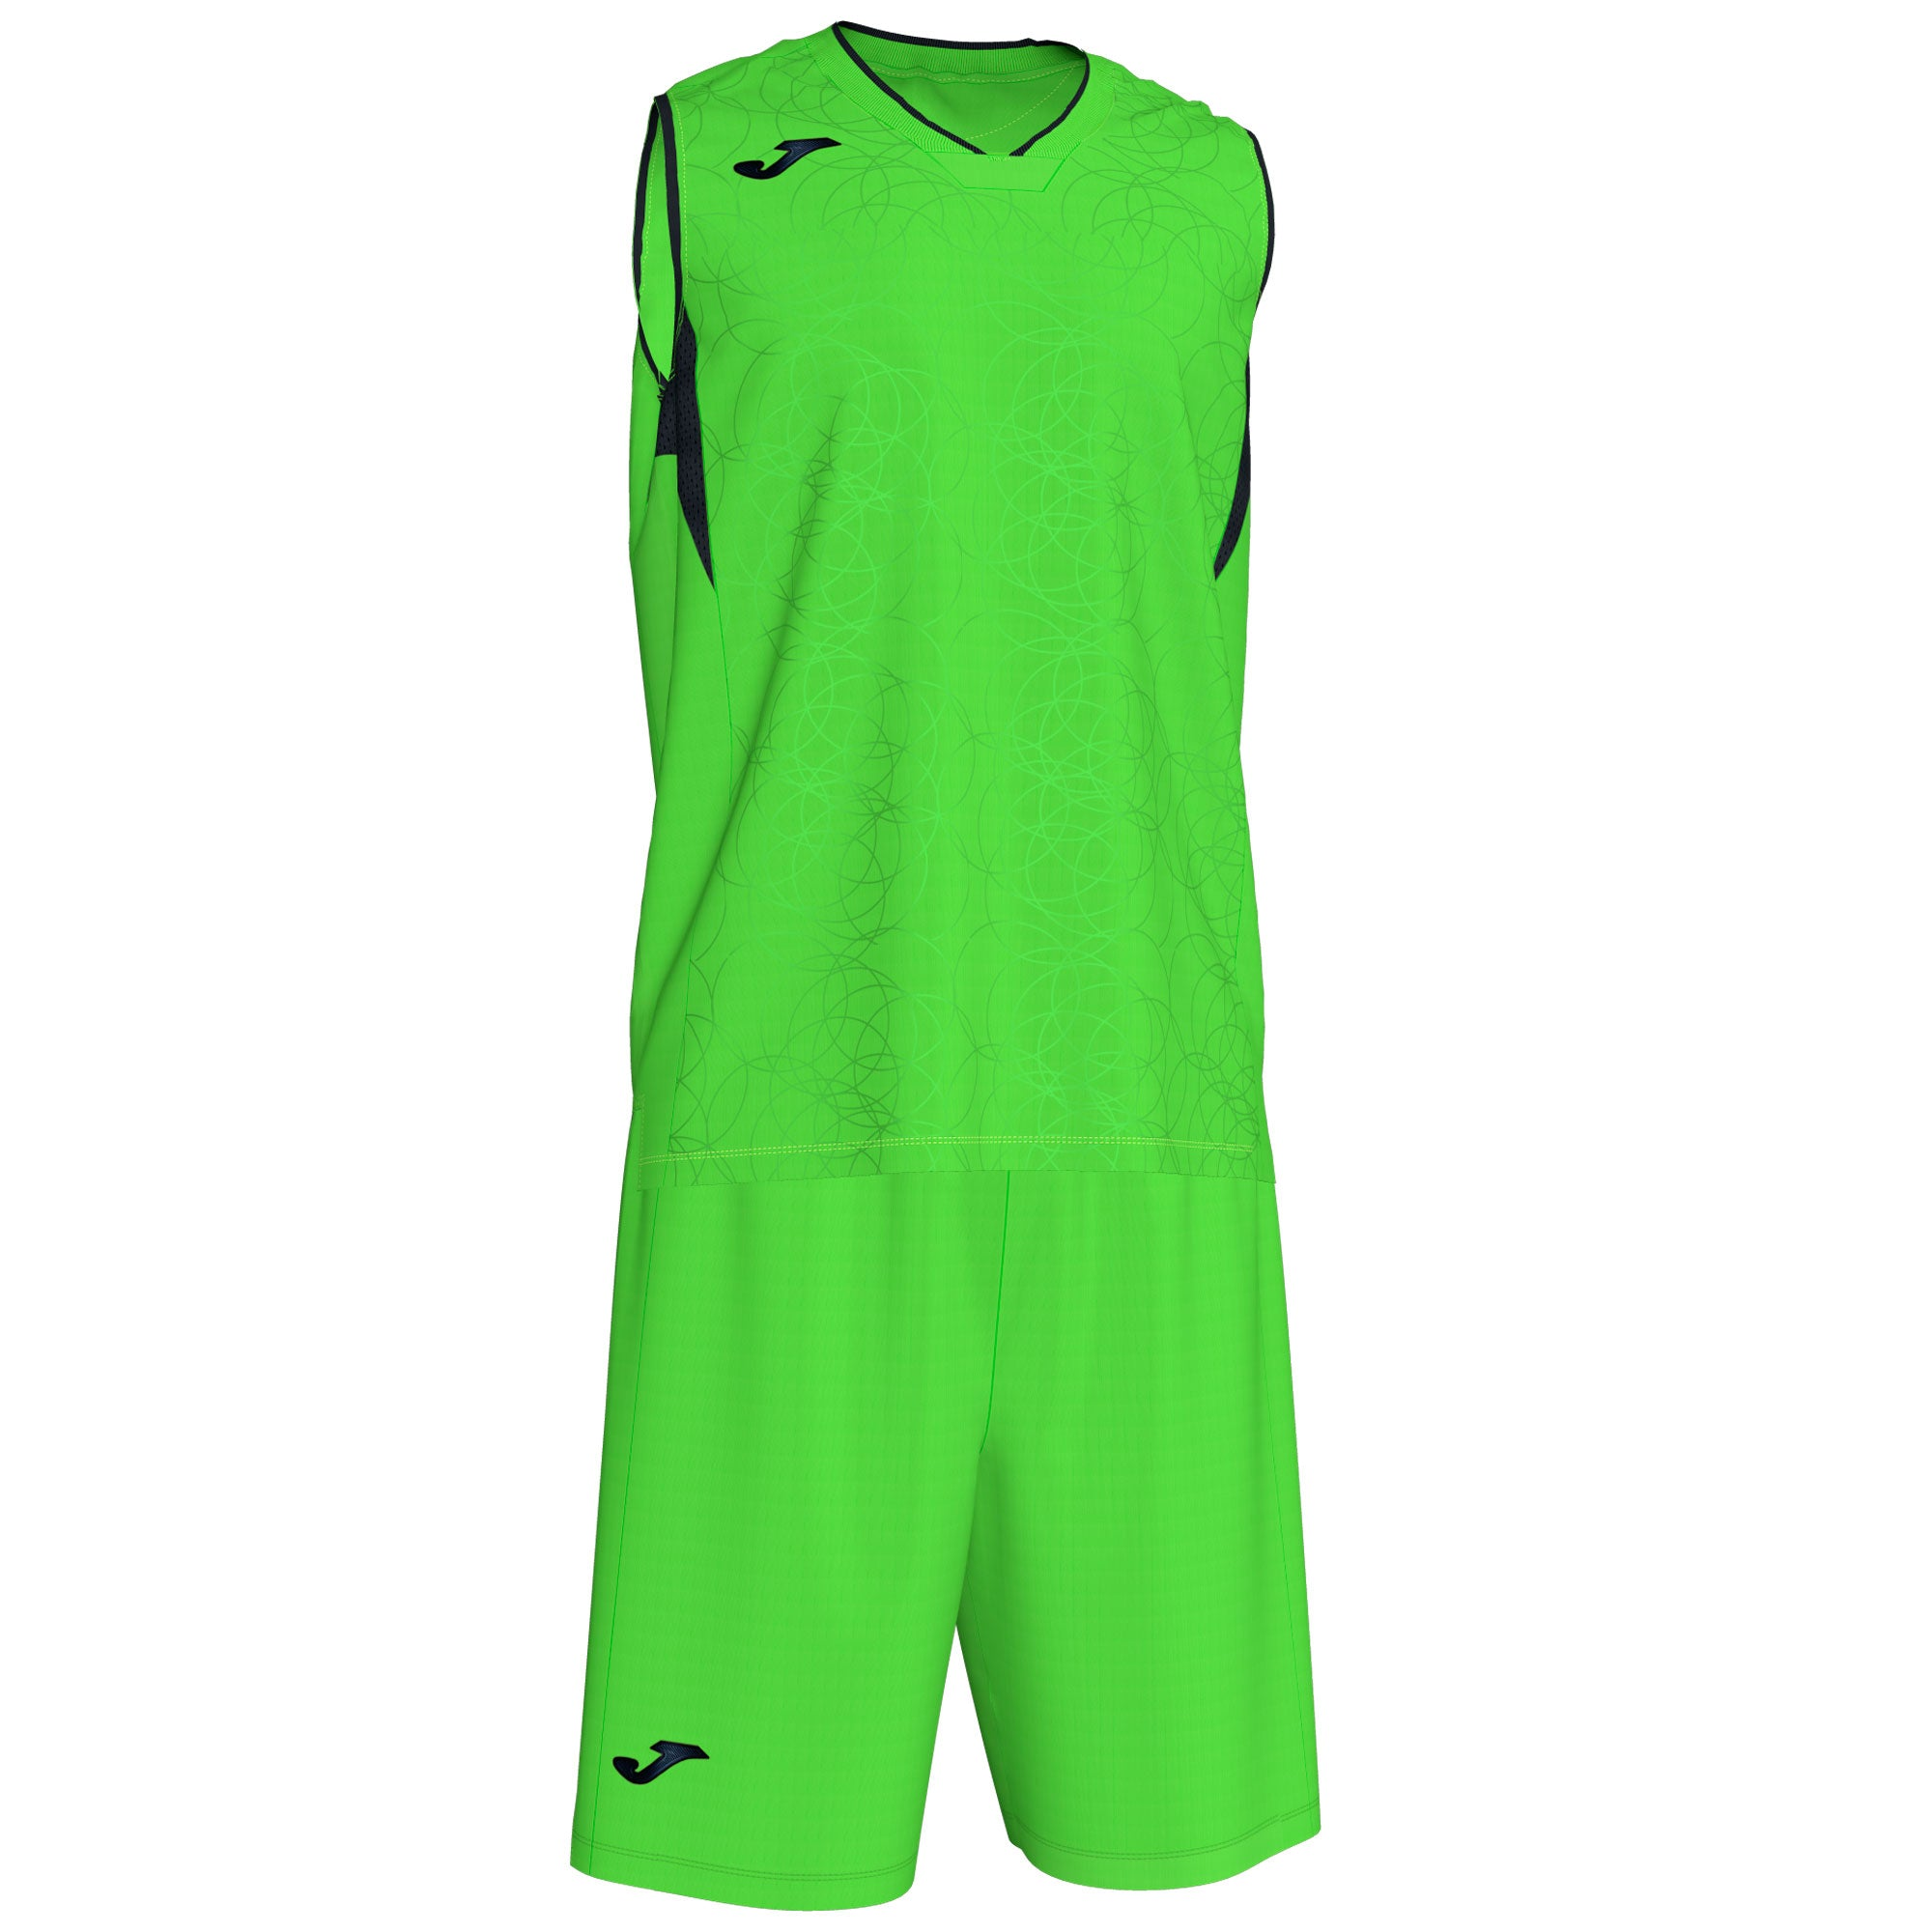 Teamwear - Joma Campus Kit - Flour Green/Black - JO-101373-021